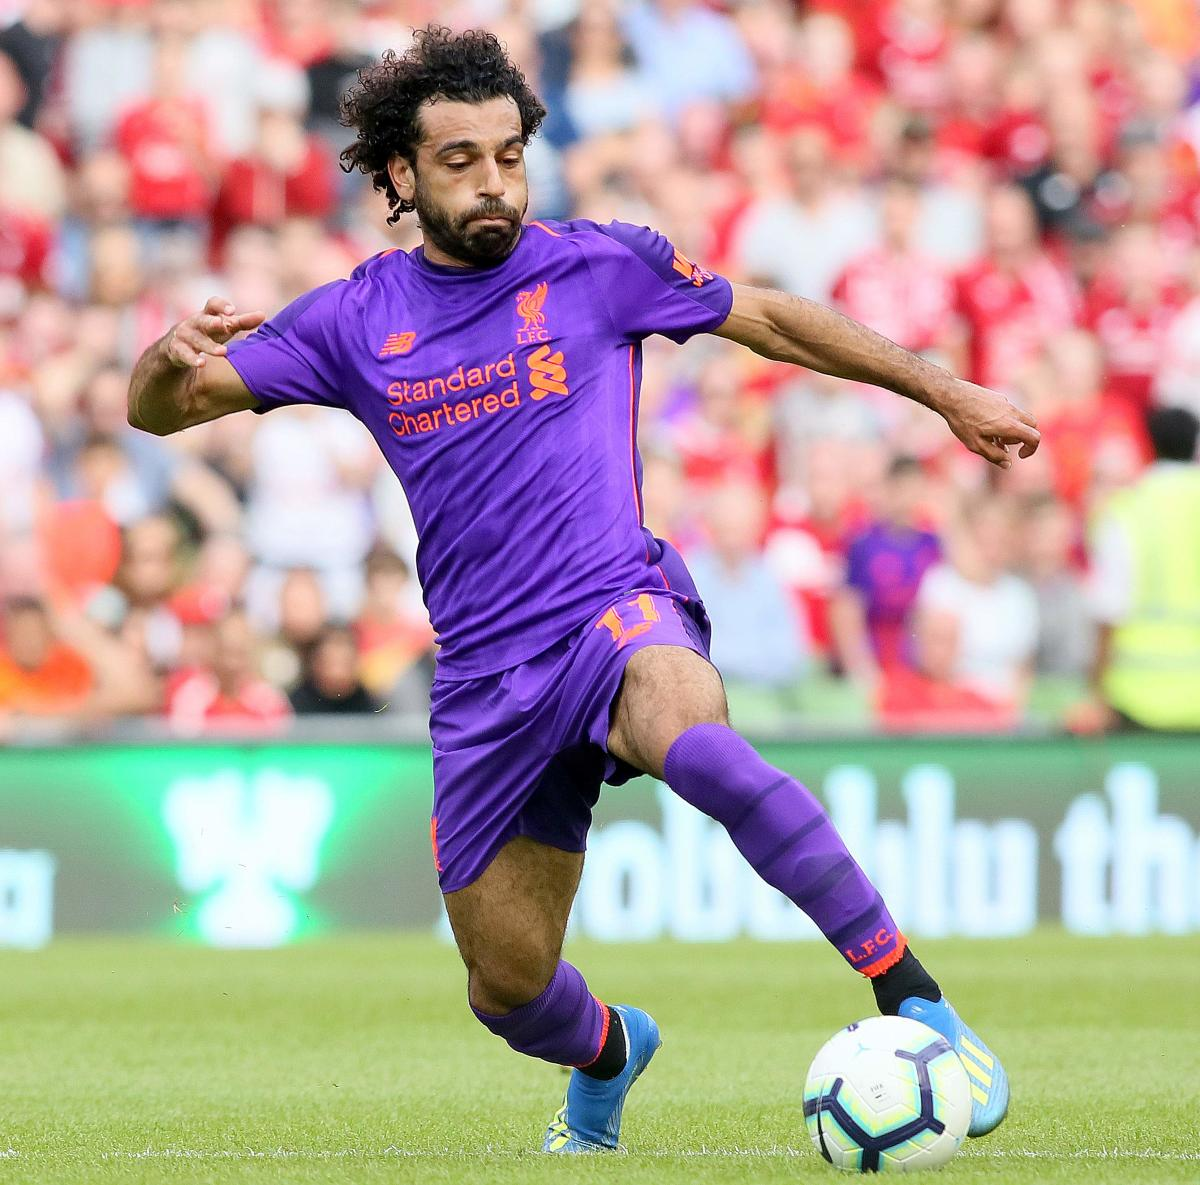 Liverpool's Mohamed Salah is on UEFA's shortlist for the best forwards who played in Champions League last season. AFP